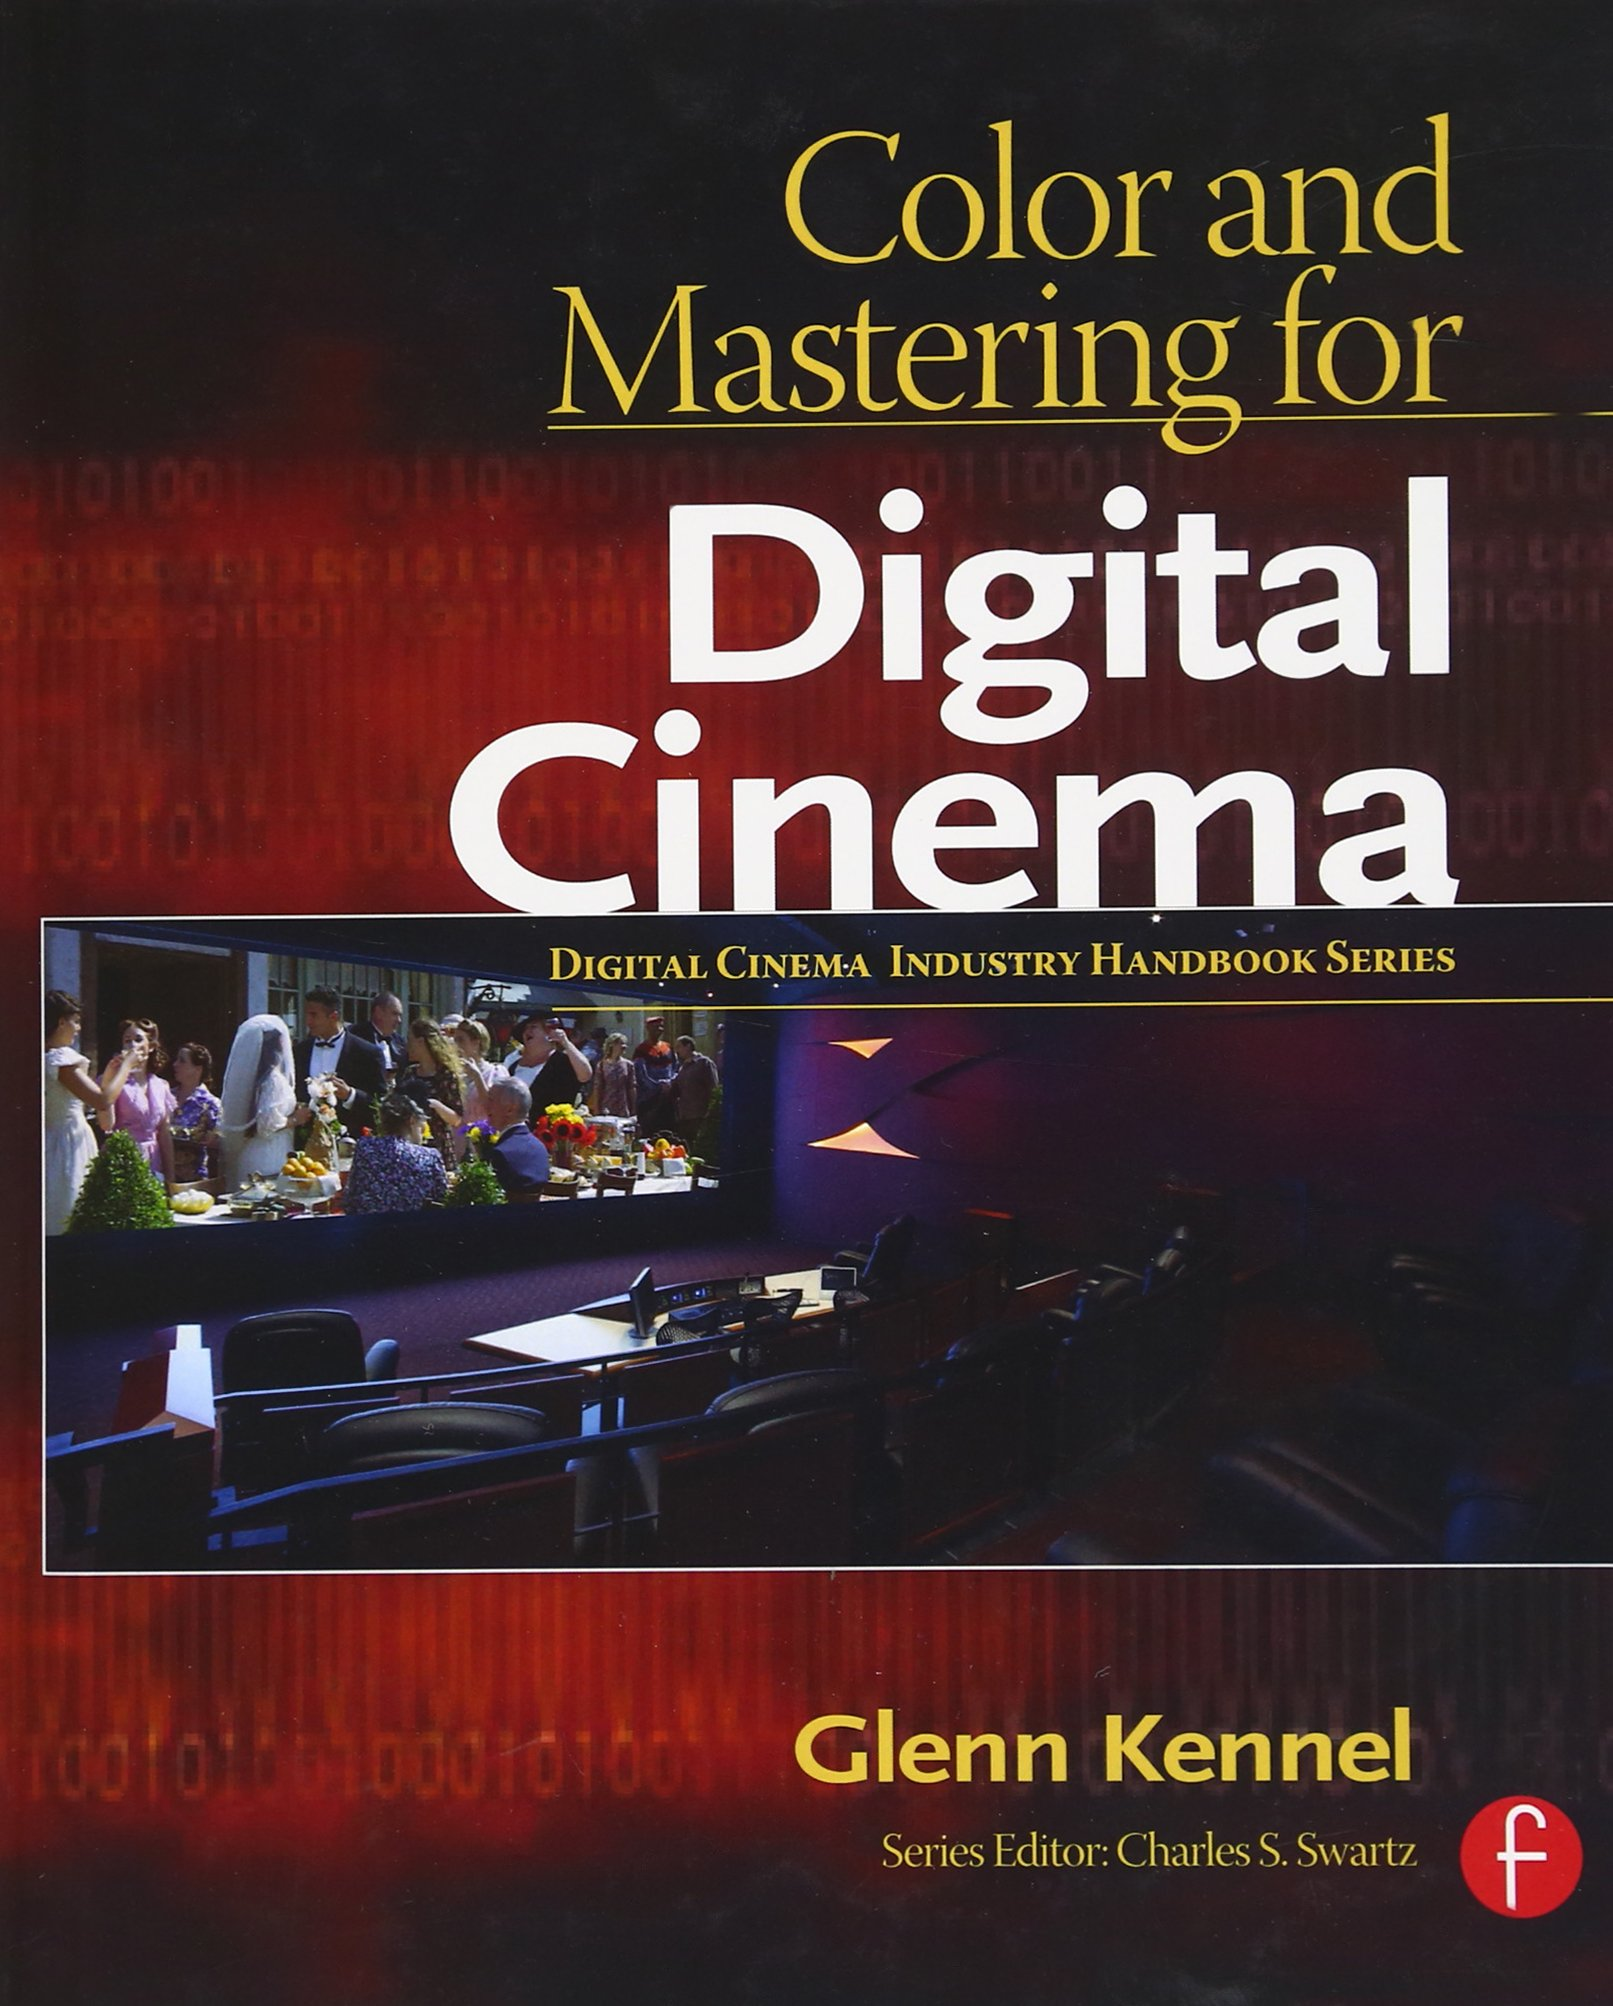 Color and Mastering for Digital Cinema (Digital Cinema Industry Handbook Series) by Focal Press